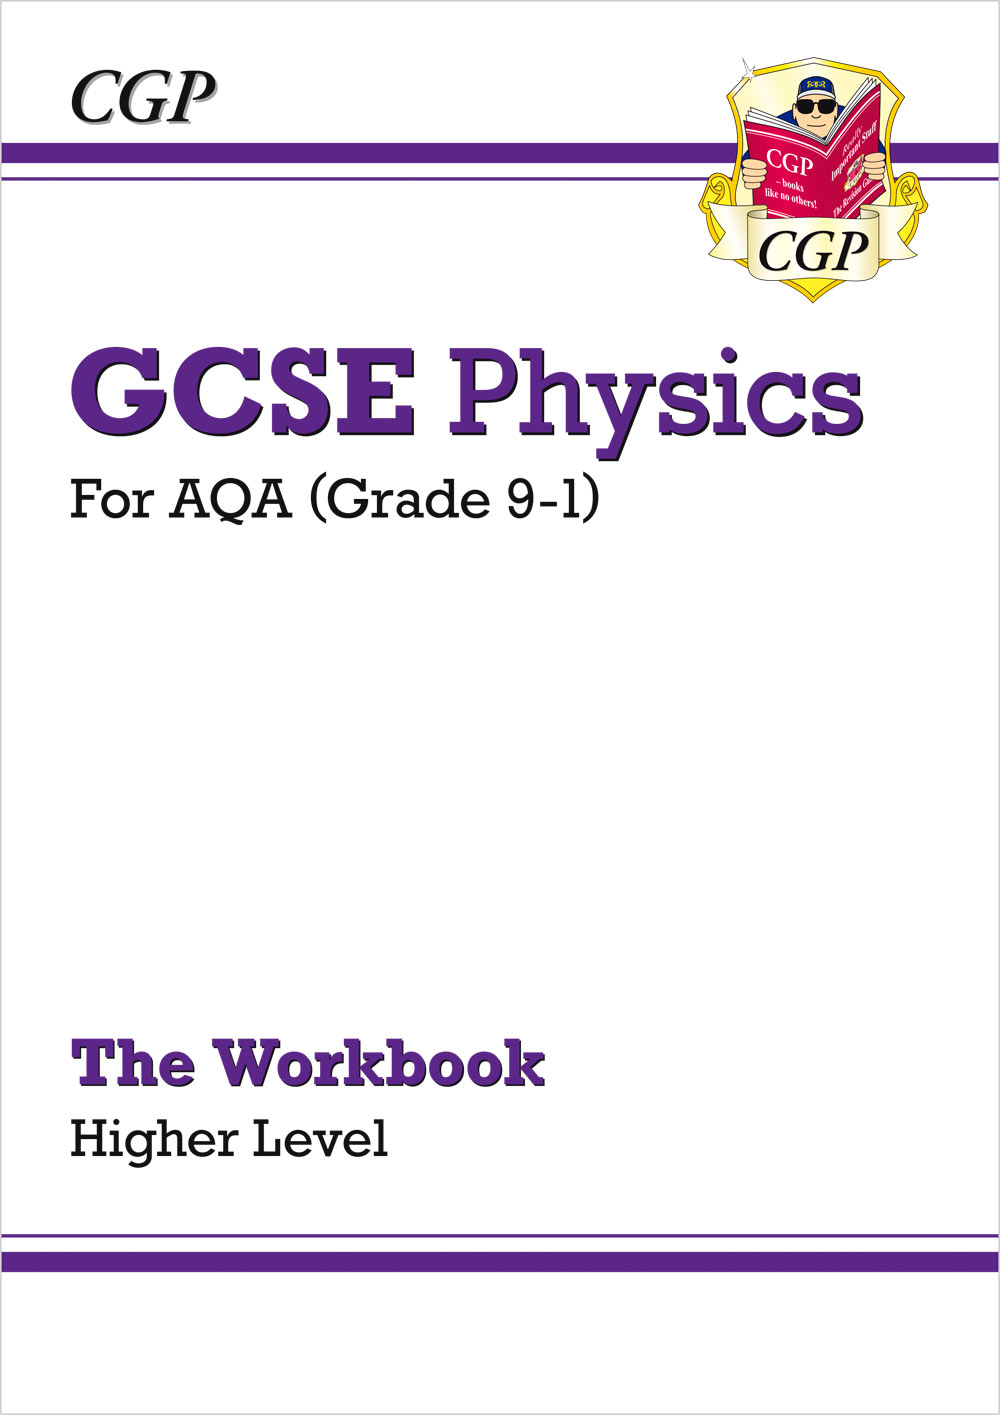 PAHW41 - Grade 9-1 GCSE Physics: AQA Workbook - Higher